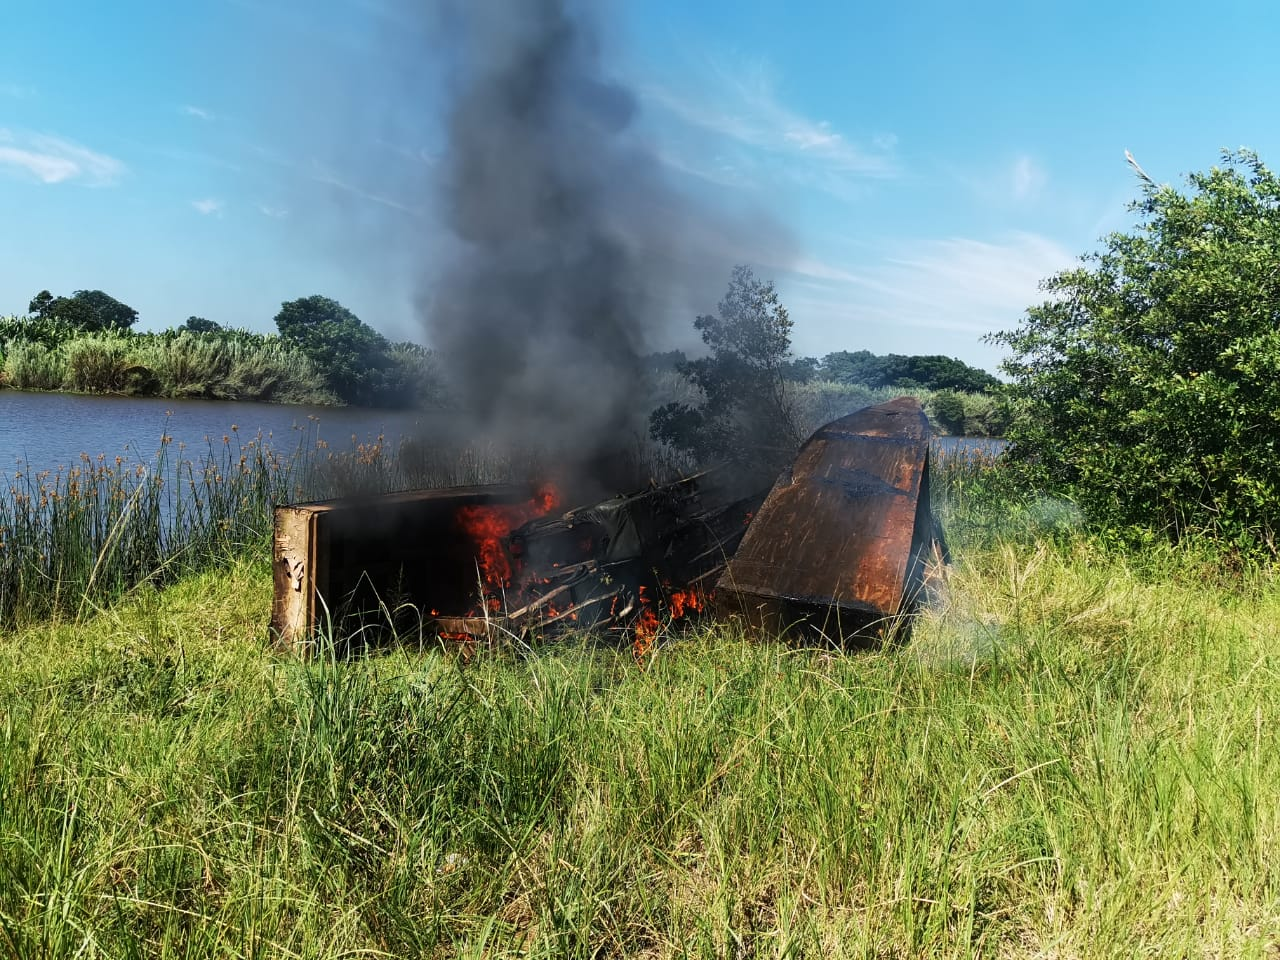 Burning nets as part of anti-poaching measures carried out voluntarily and with DAFF in Richards Bay